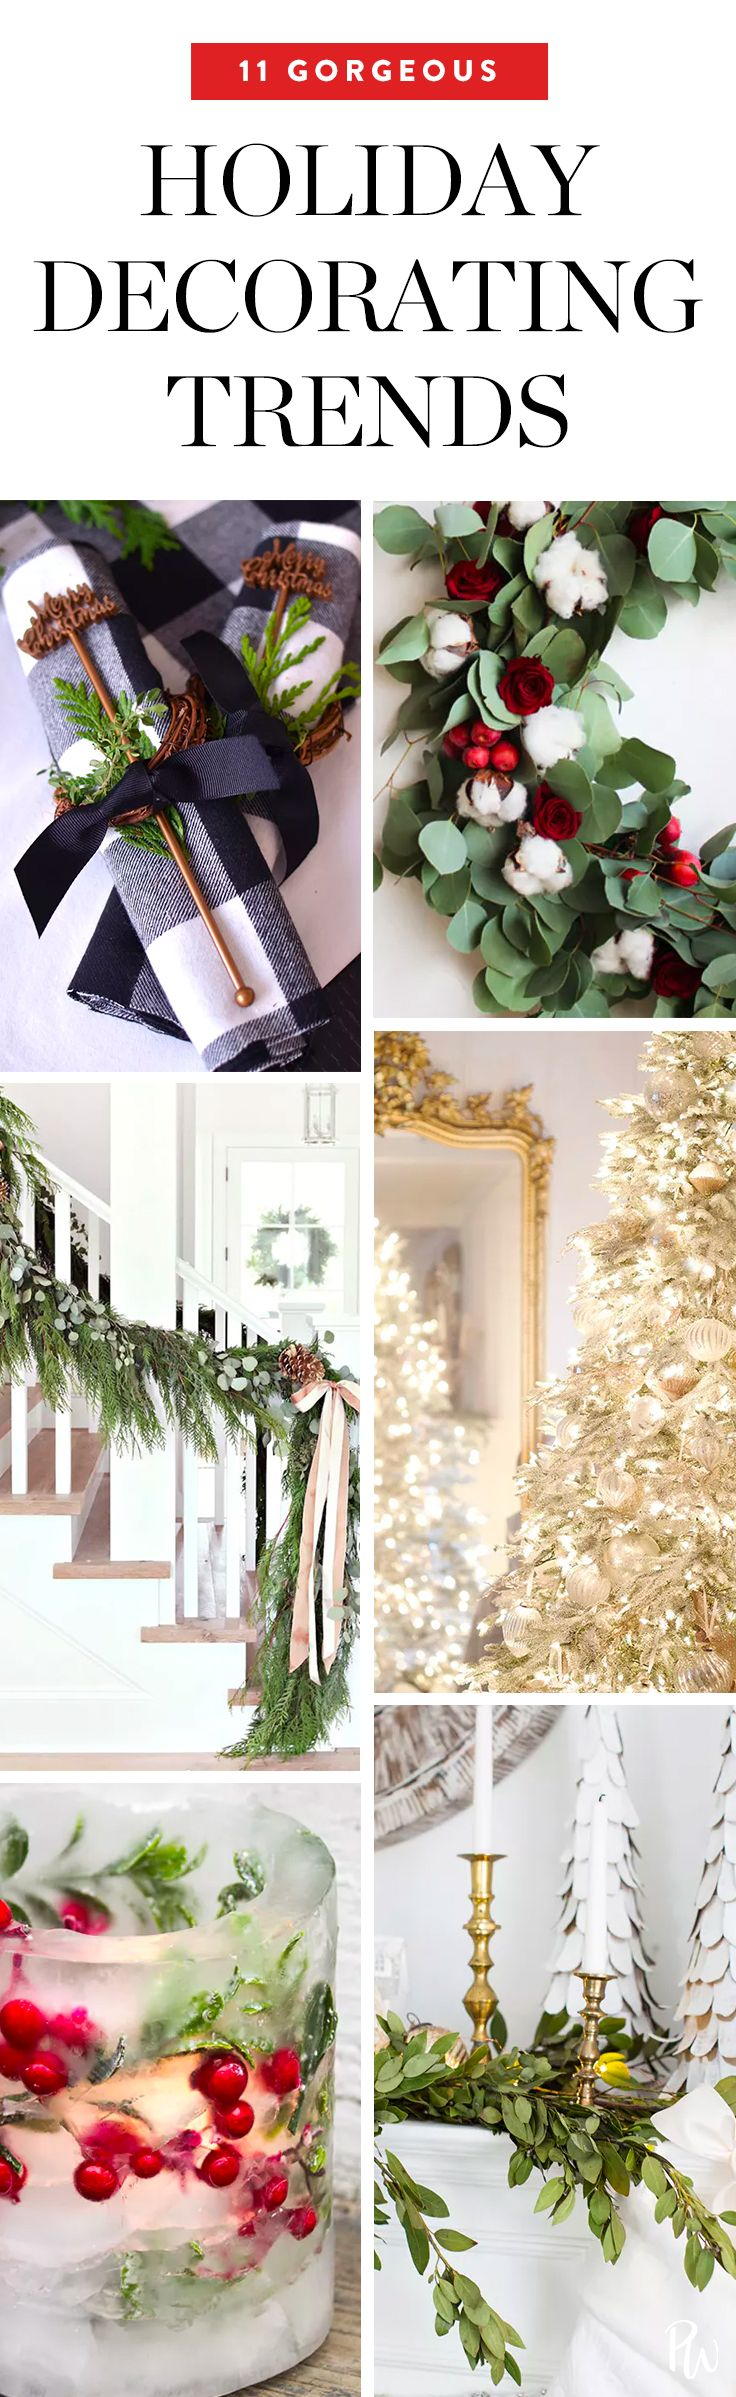 146 best Holiday Decor images on Pinterest | Xmas, Christmas crafts ...